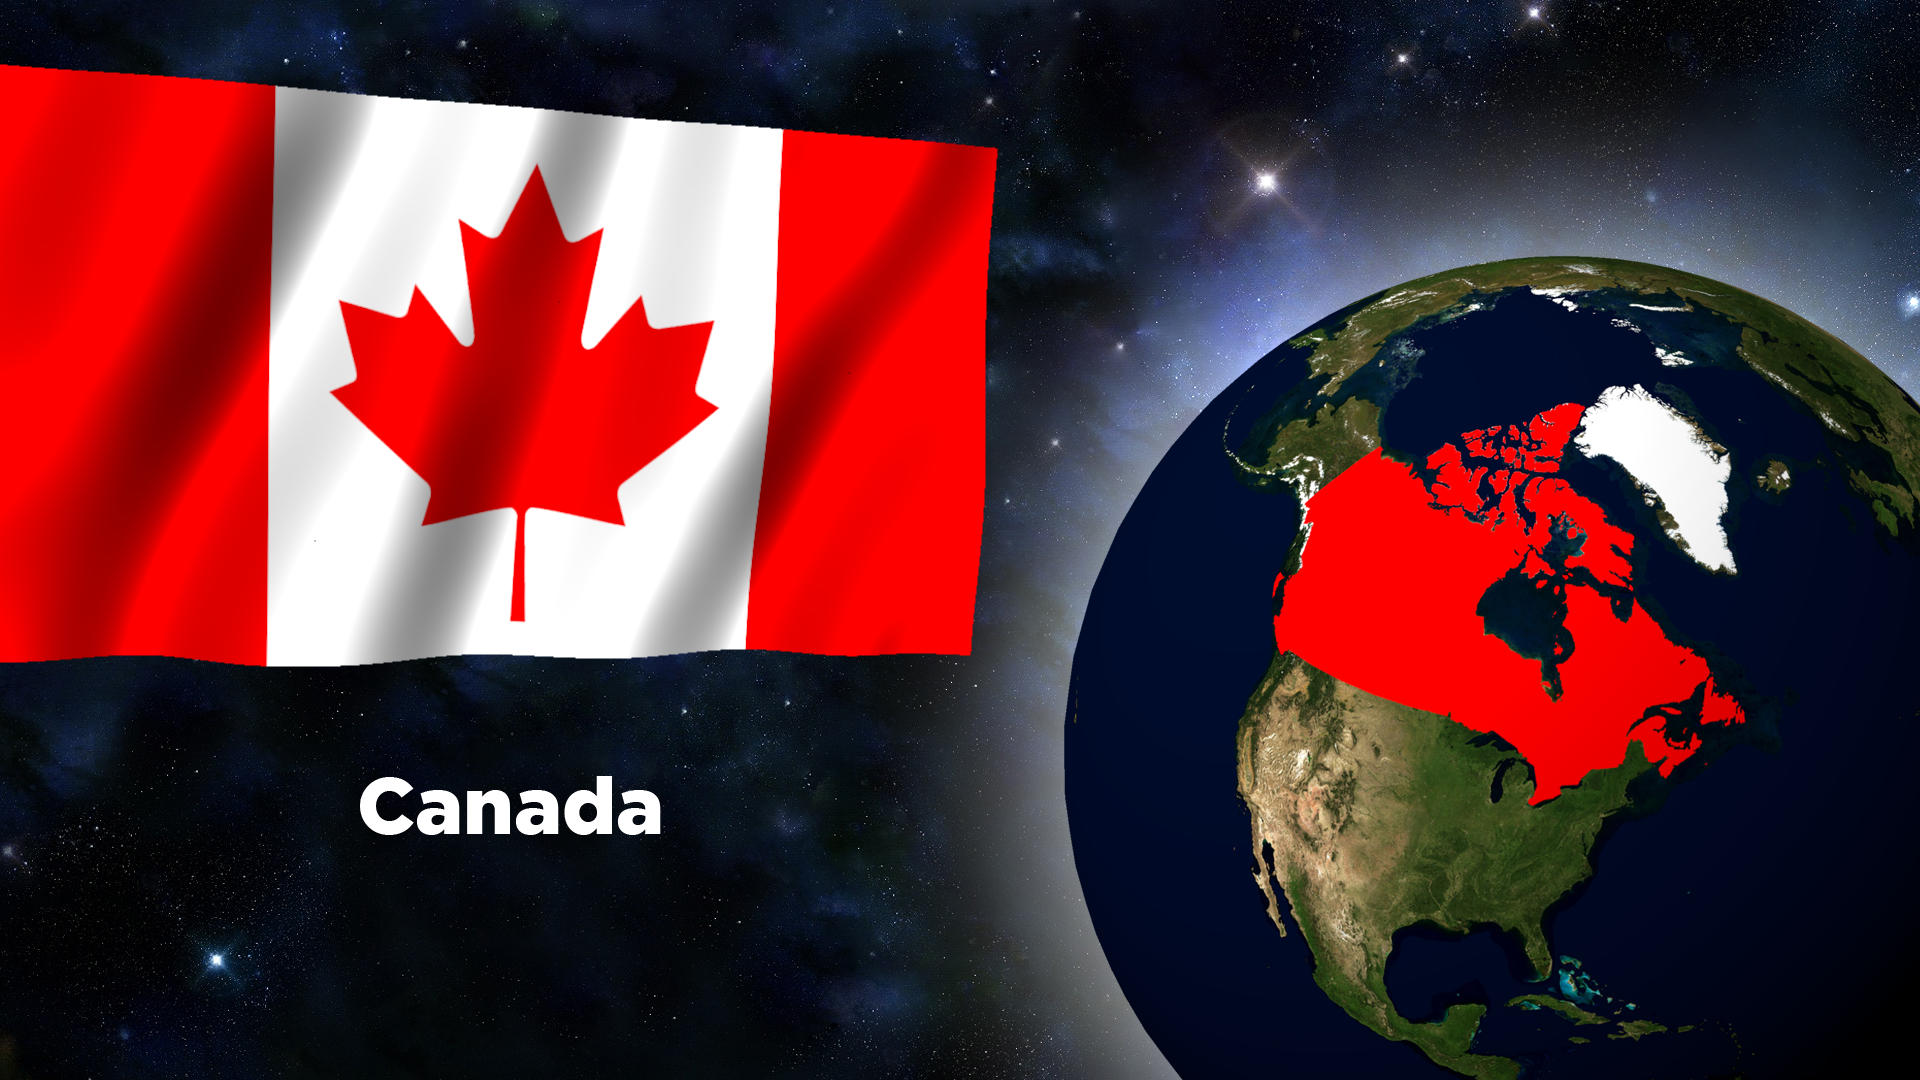 Canada Flag Backgrounds (PC, Mobile, Gadgets) Compatible | 1920x1080